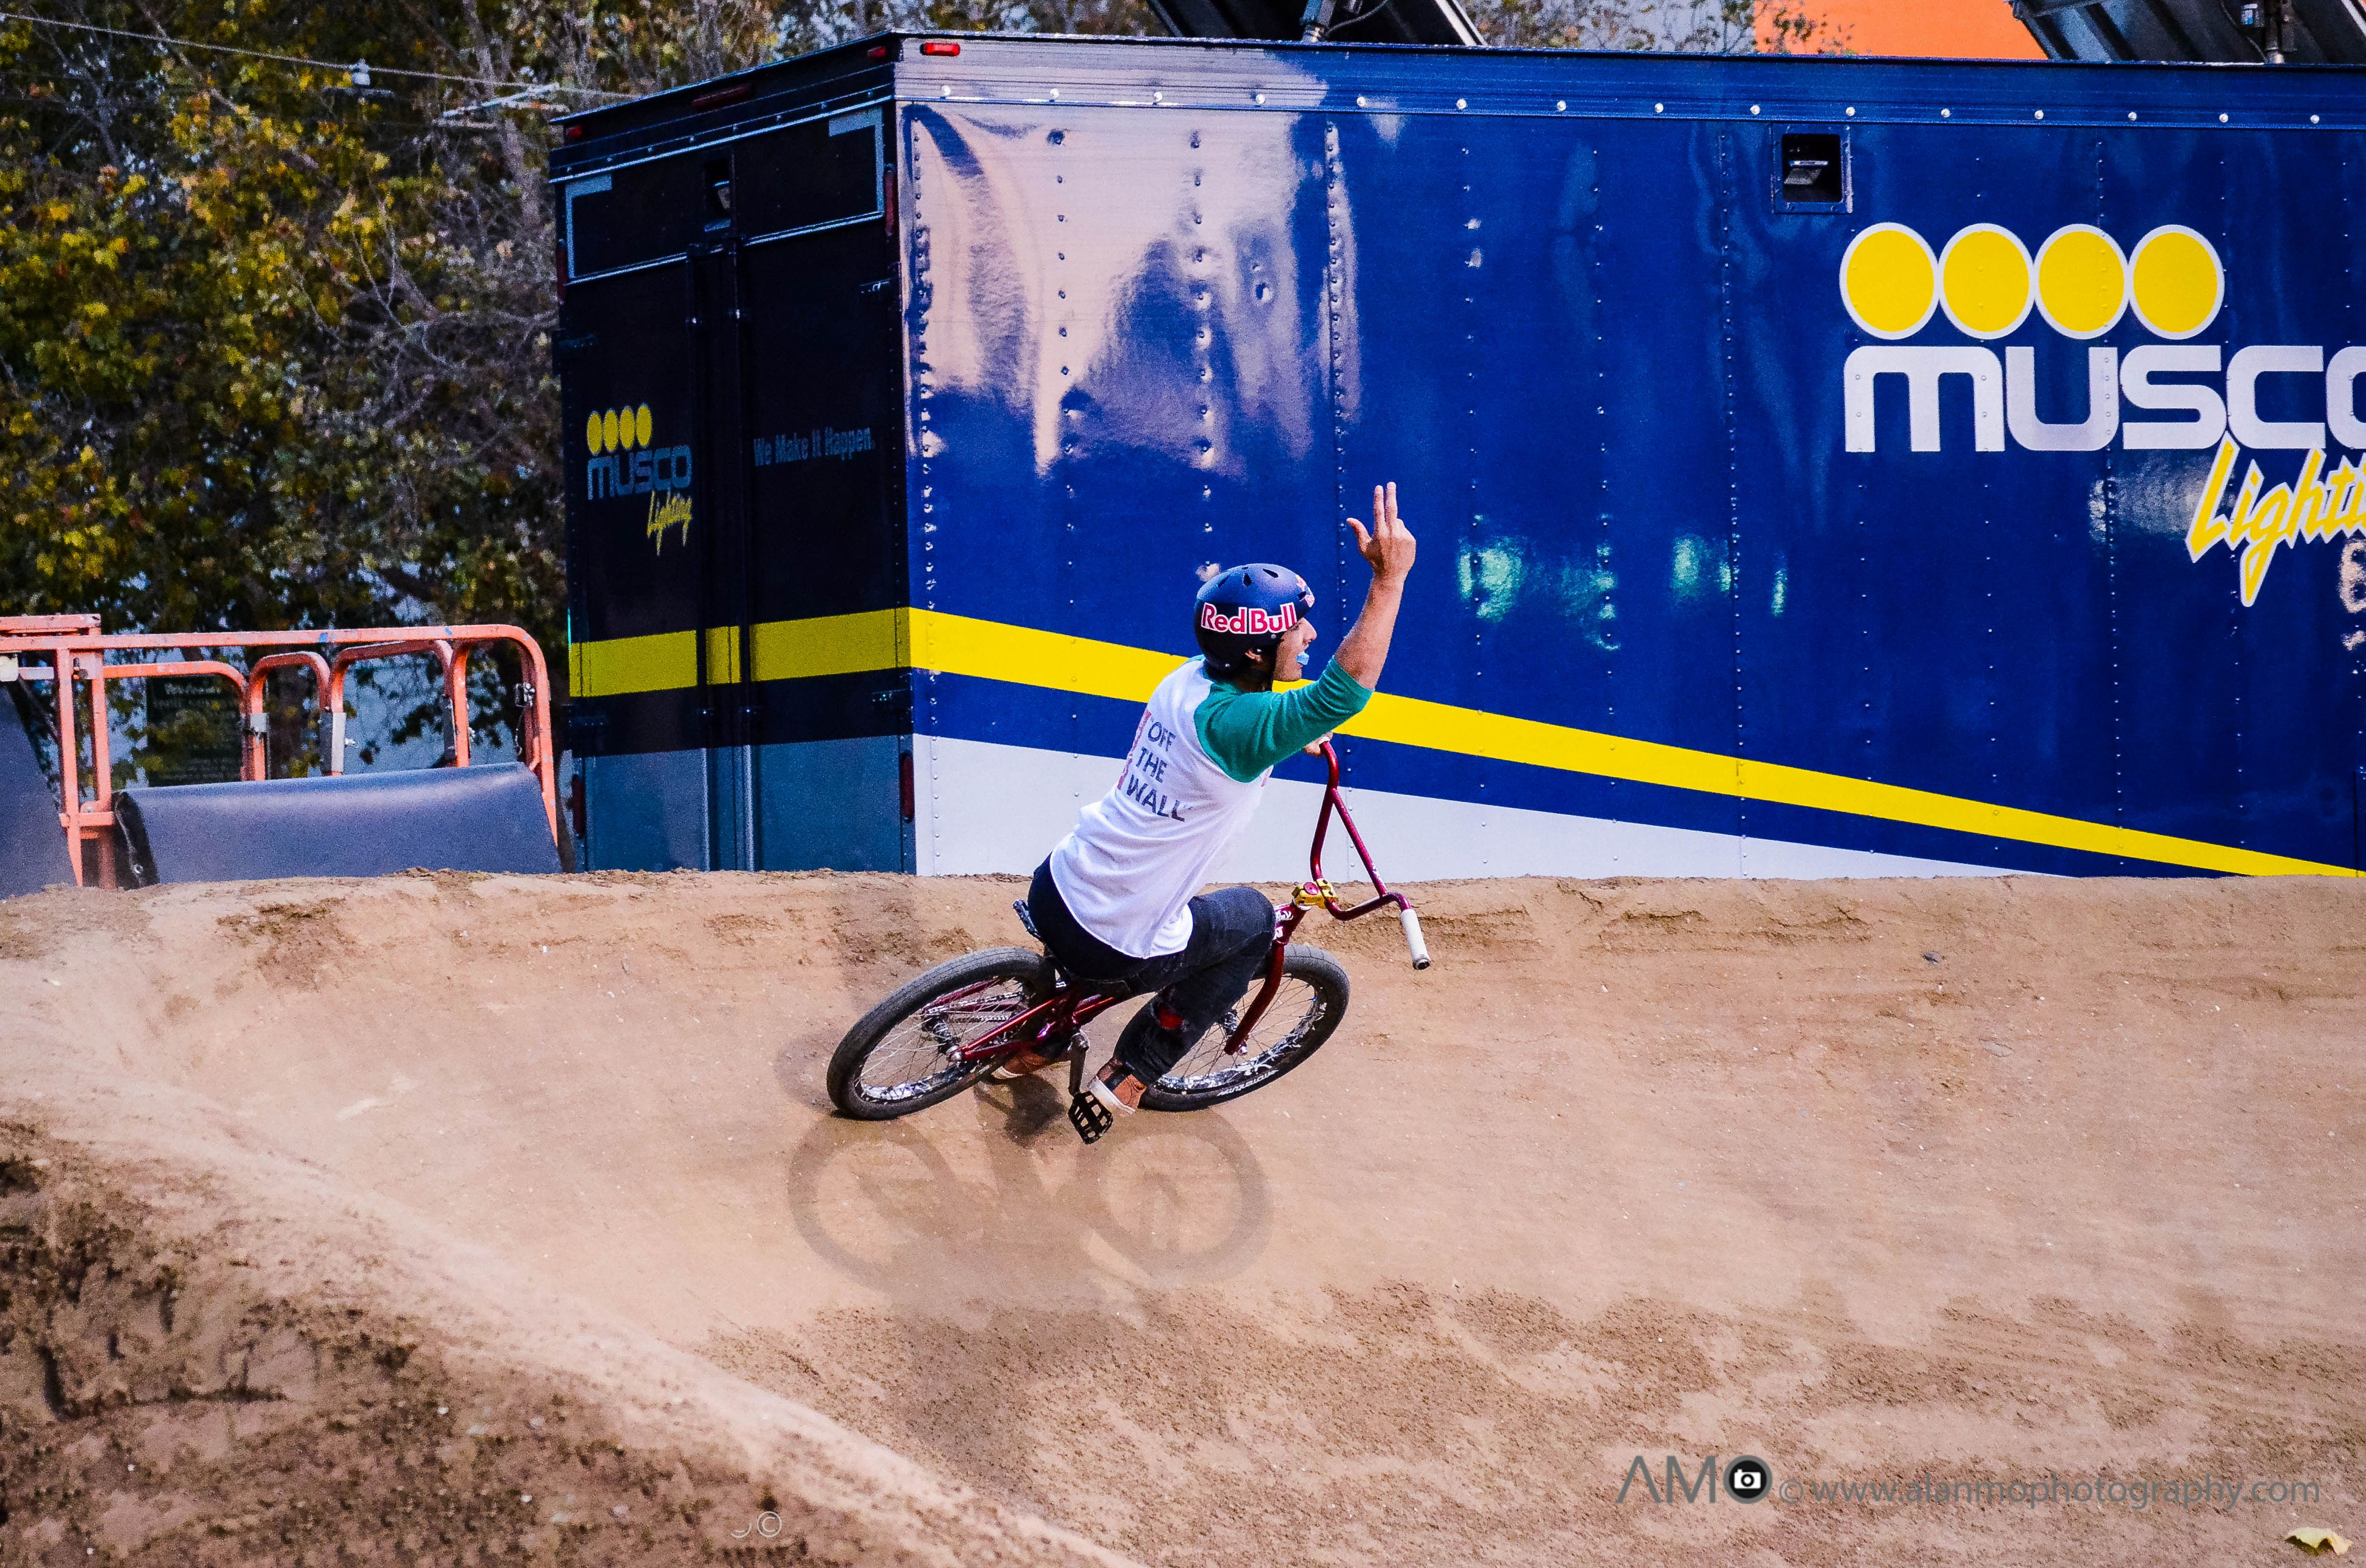 BMX Dirt | Action sports photography, Sports photography ...